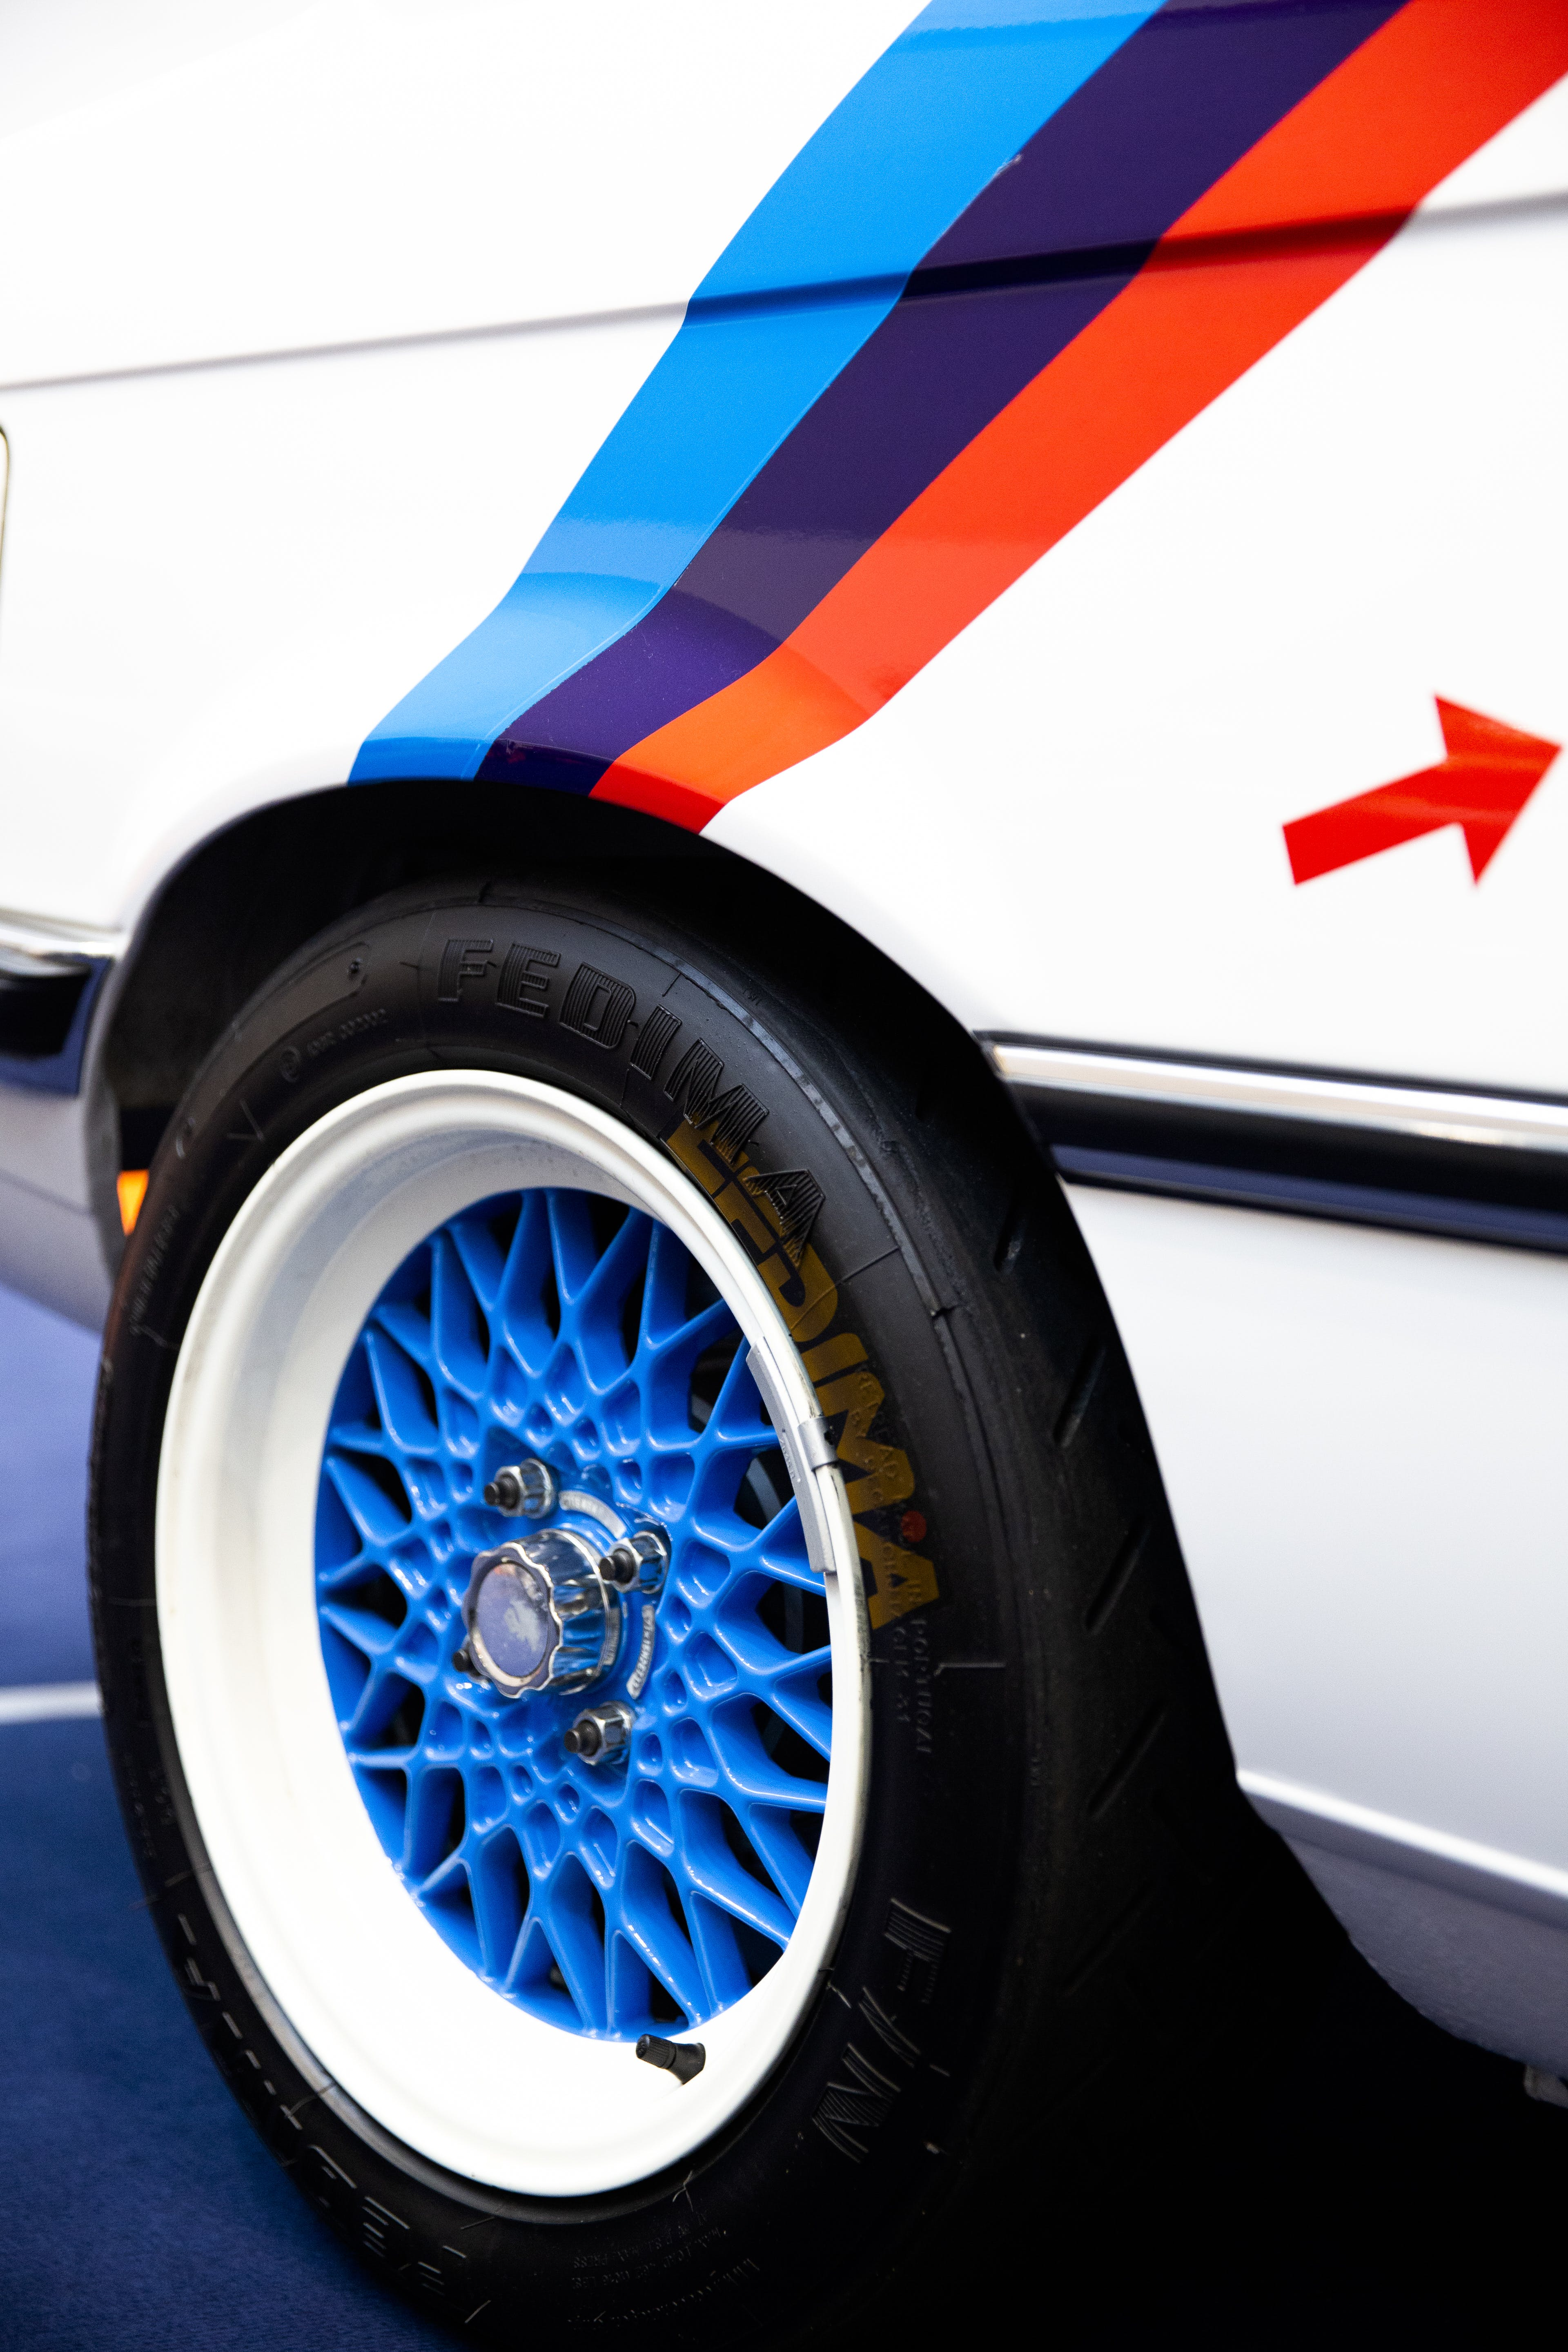 White Vehicle With Blue Multispoke Wheel and Tire